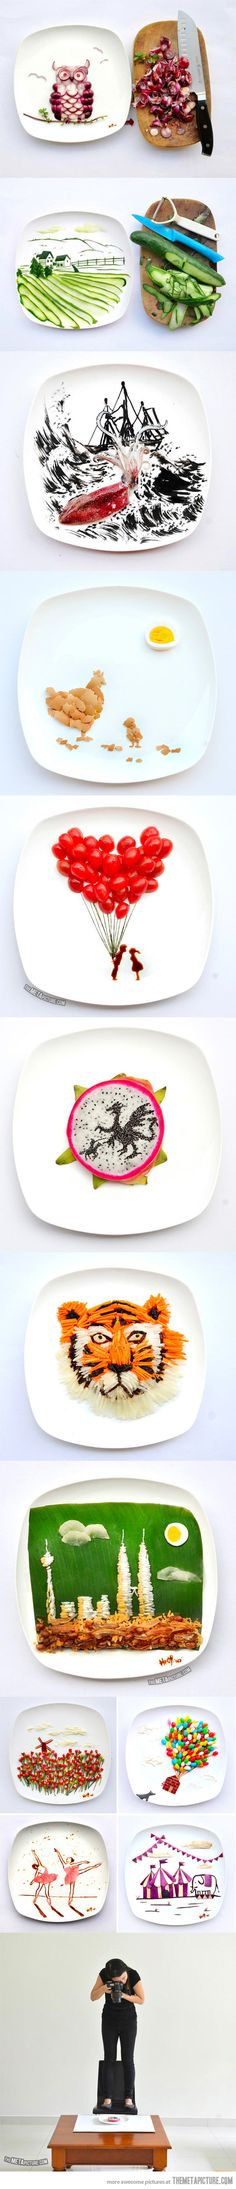 Artist Hong Yi plays with her food….